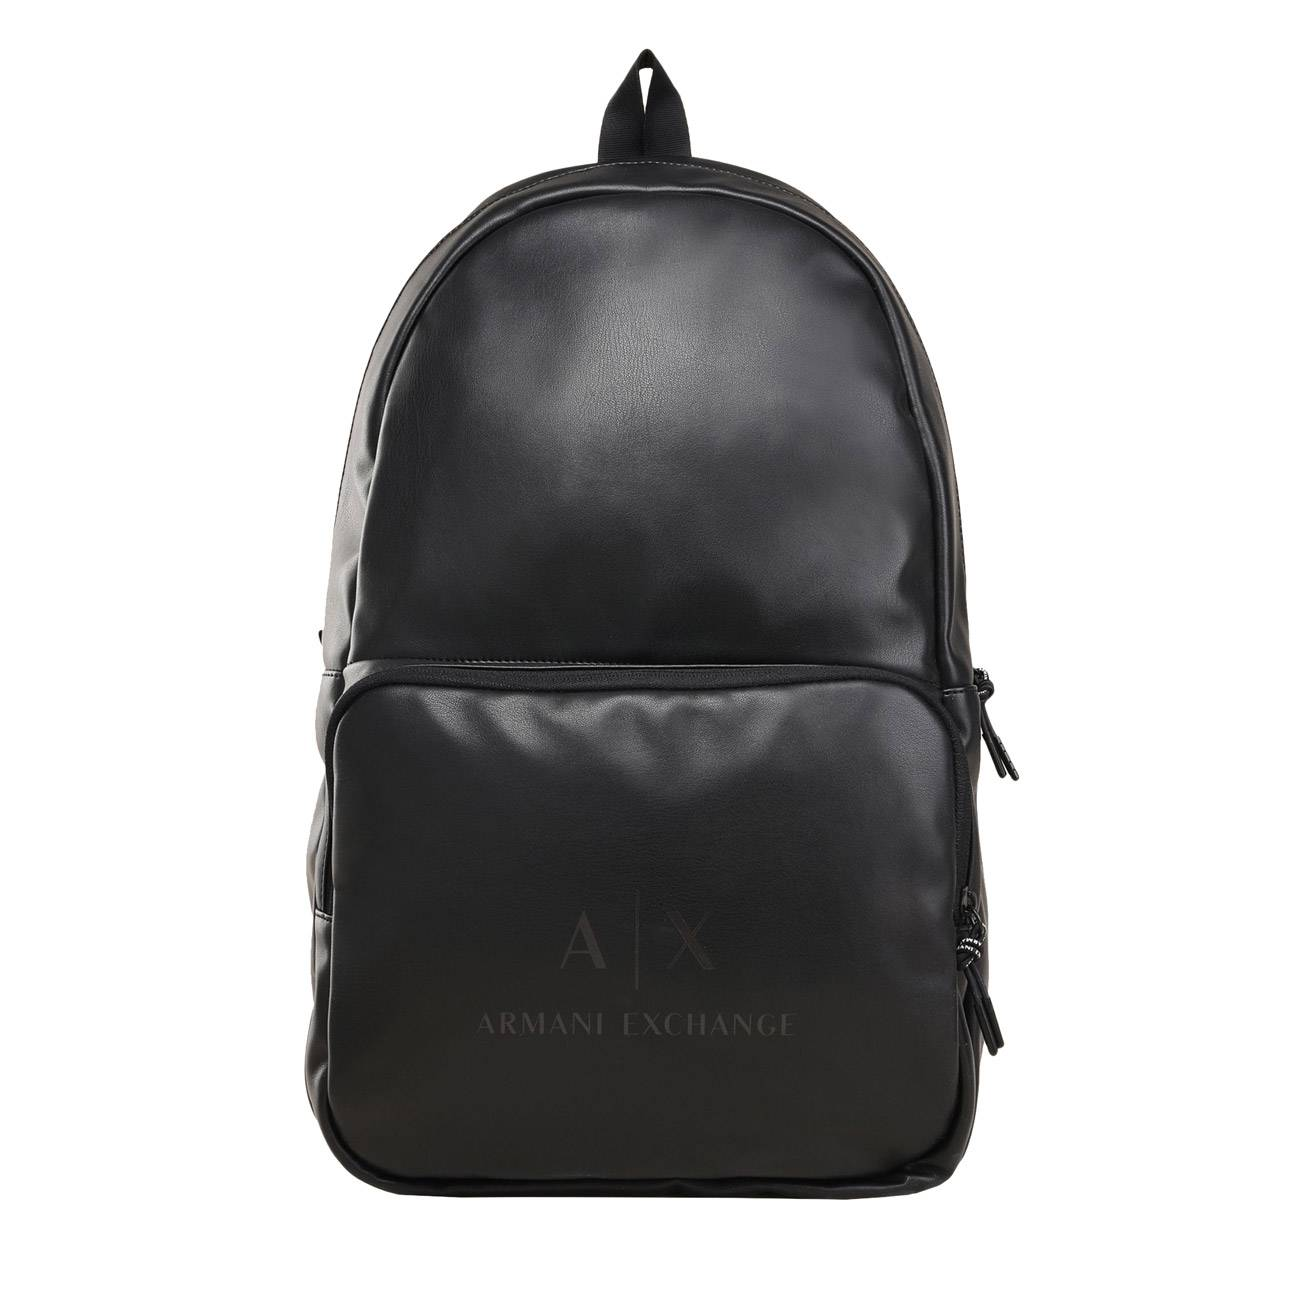 FAUX-LEATHER LOGO BACKPACK